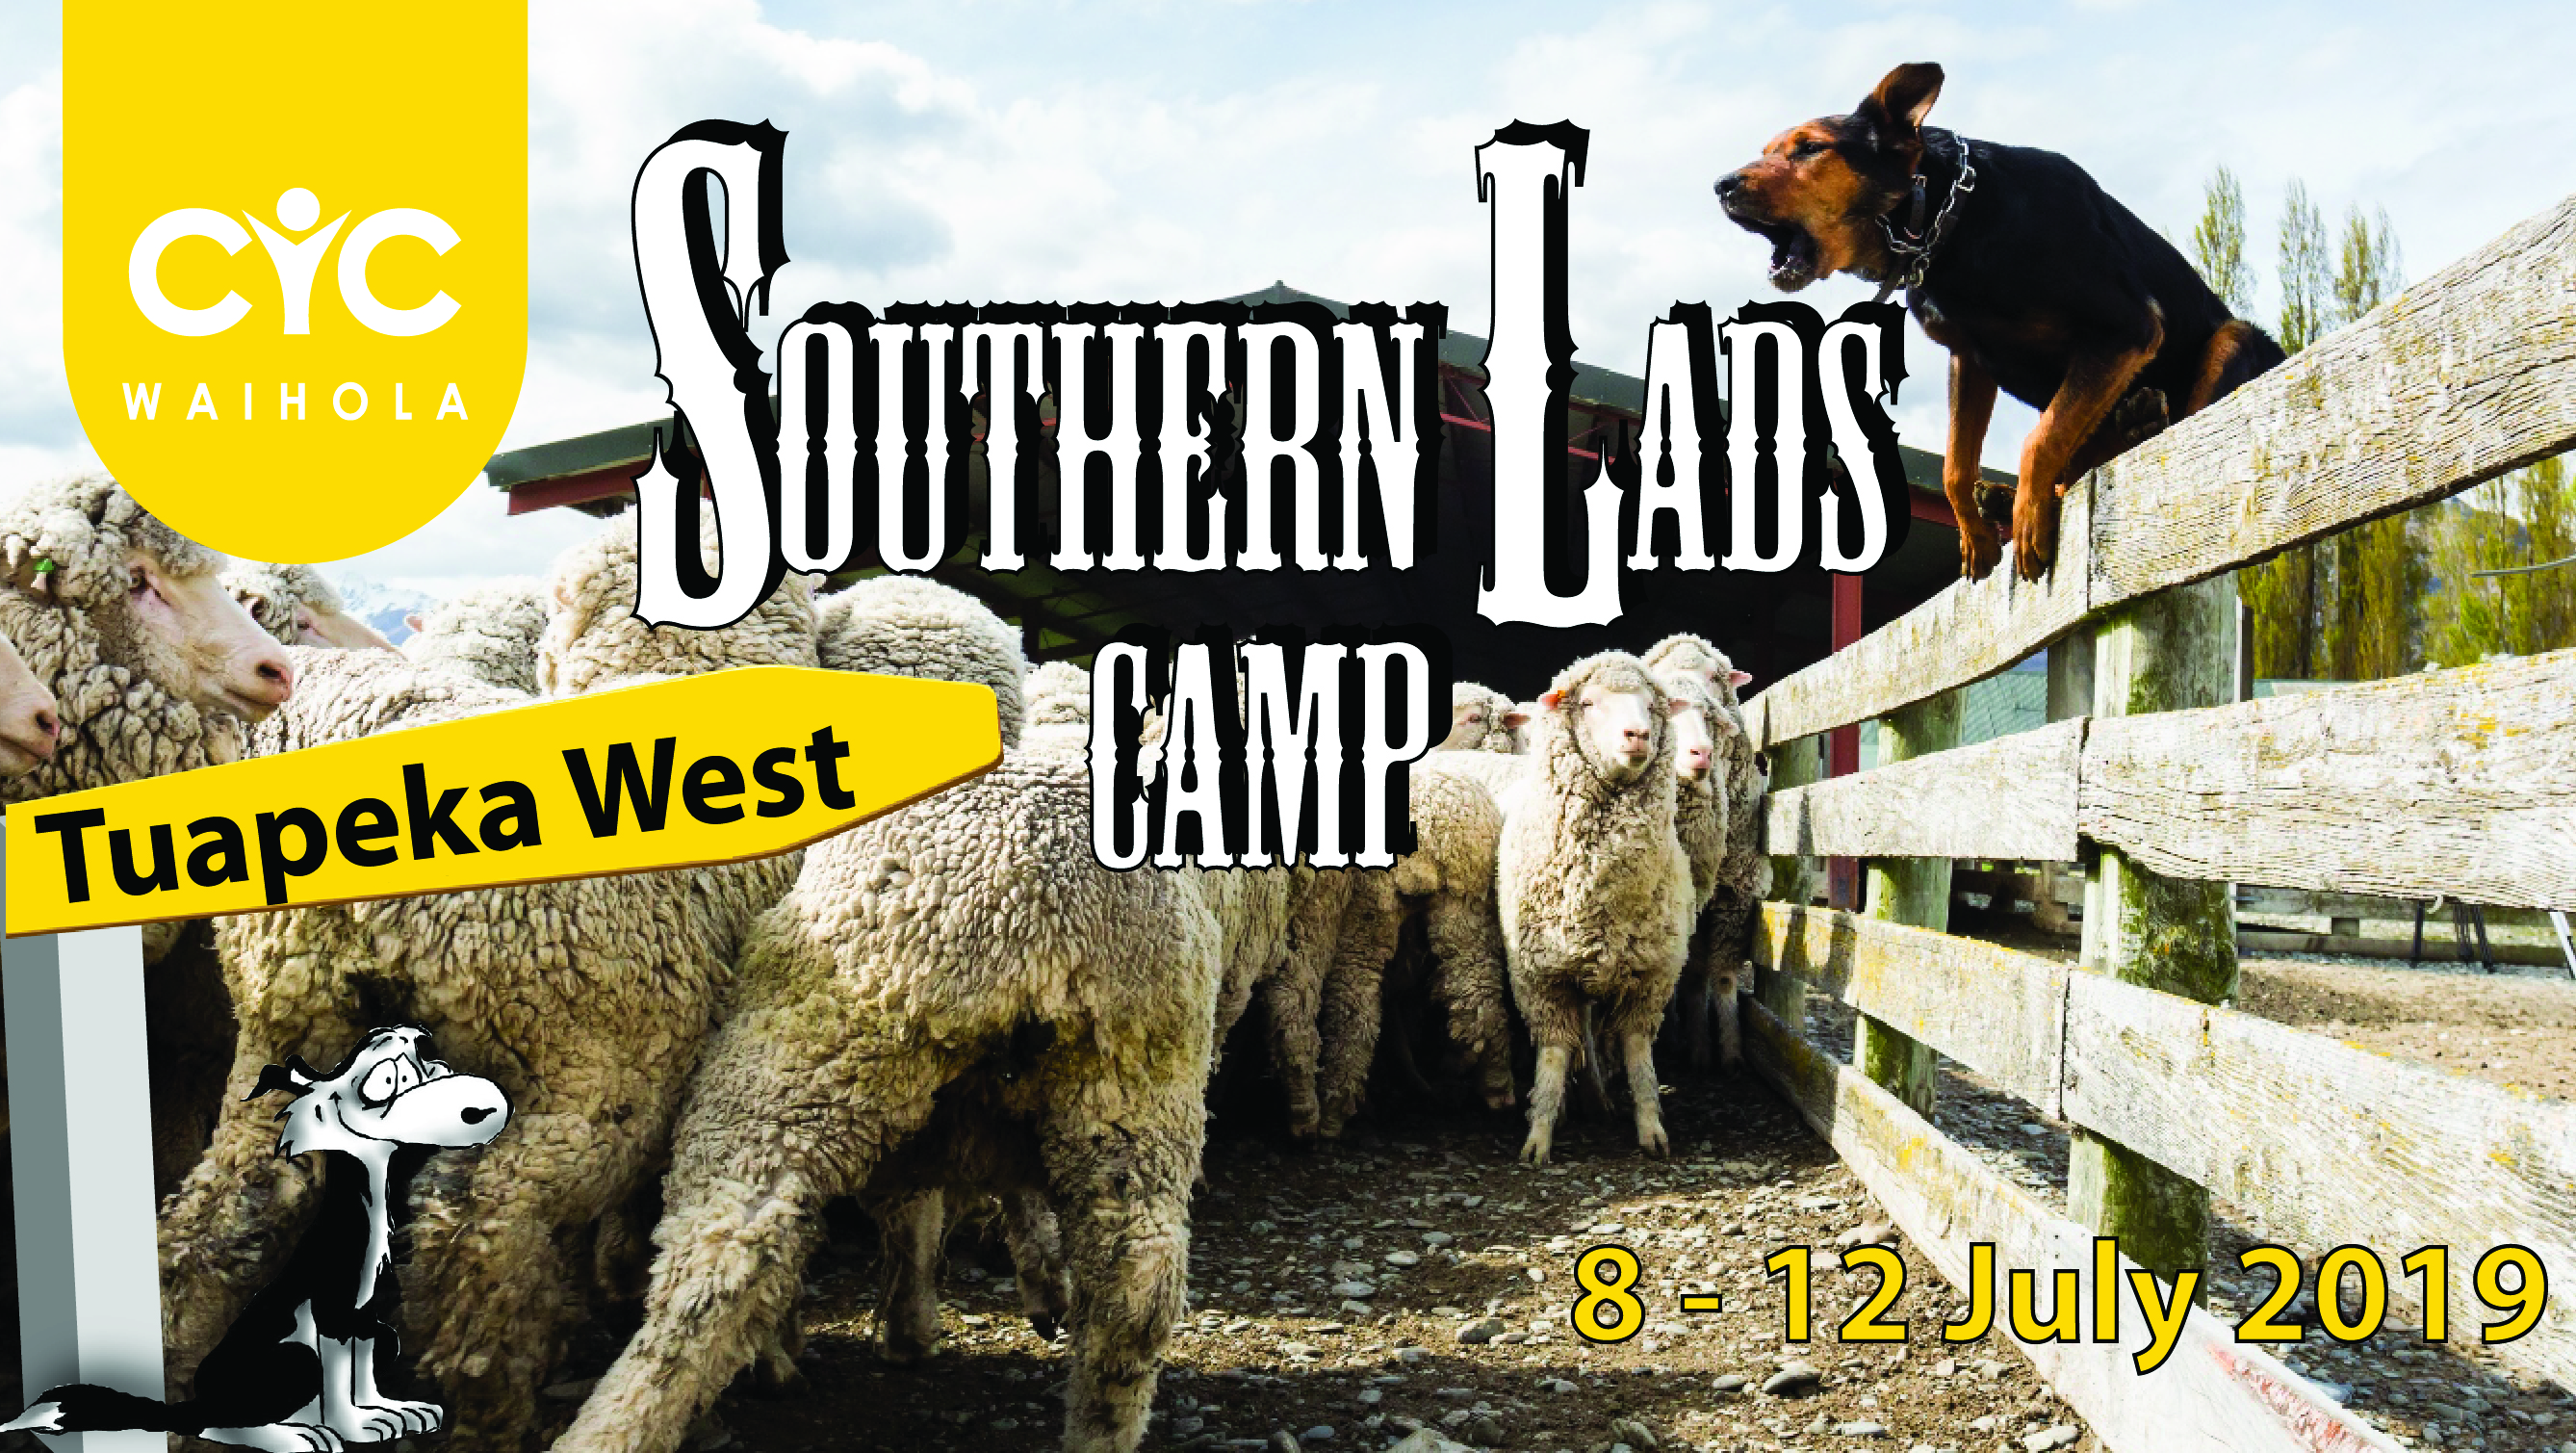 2019 Southern Lads Camp